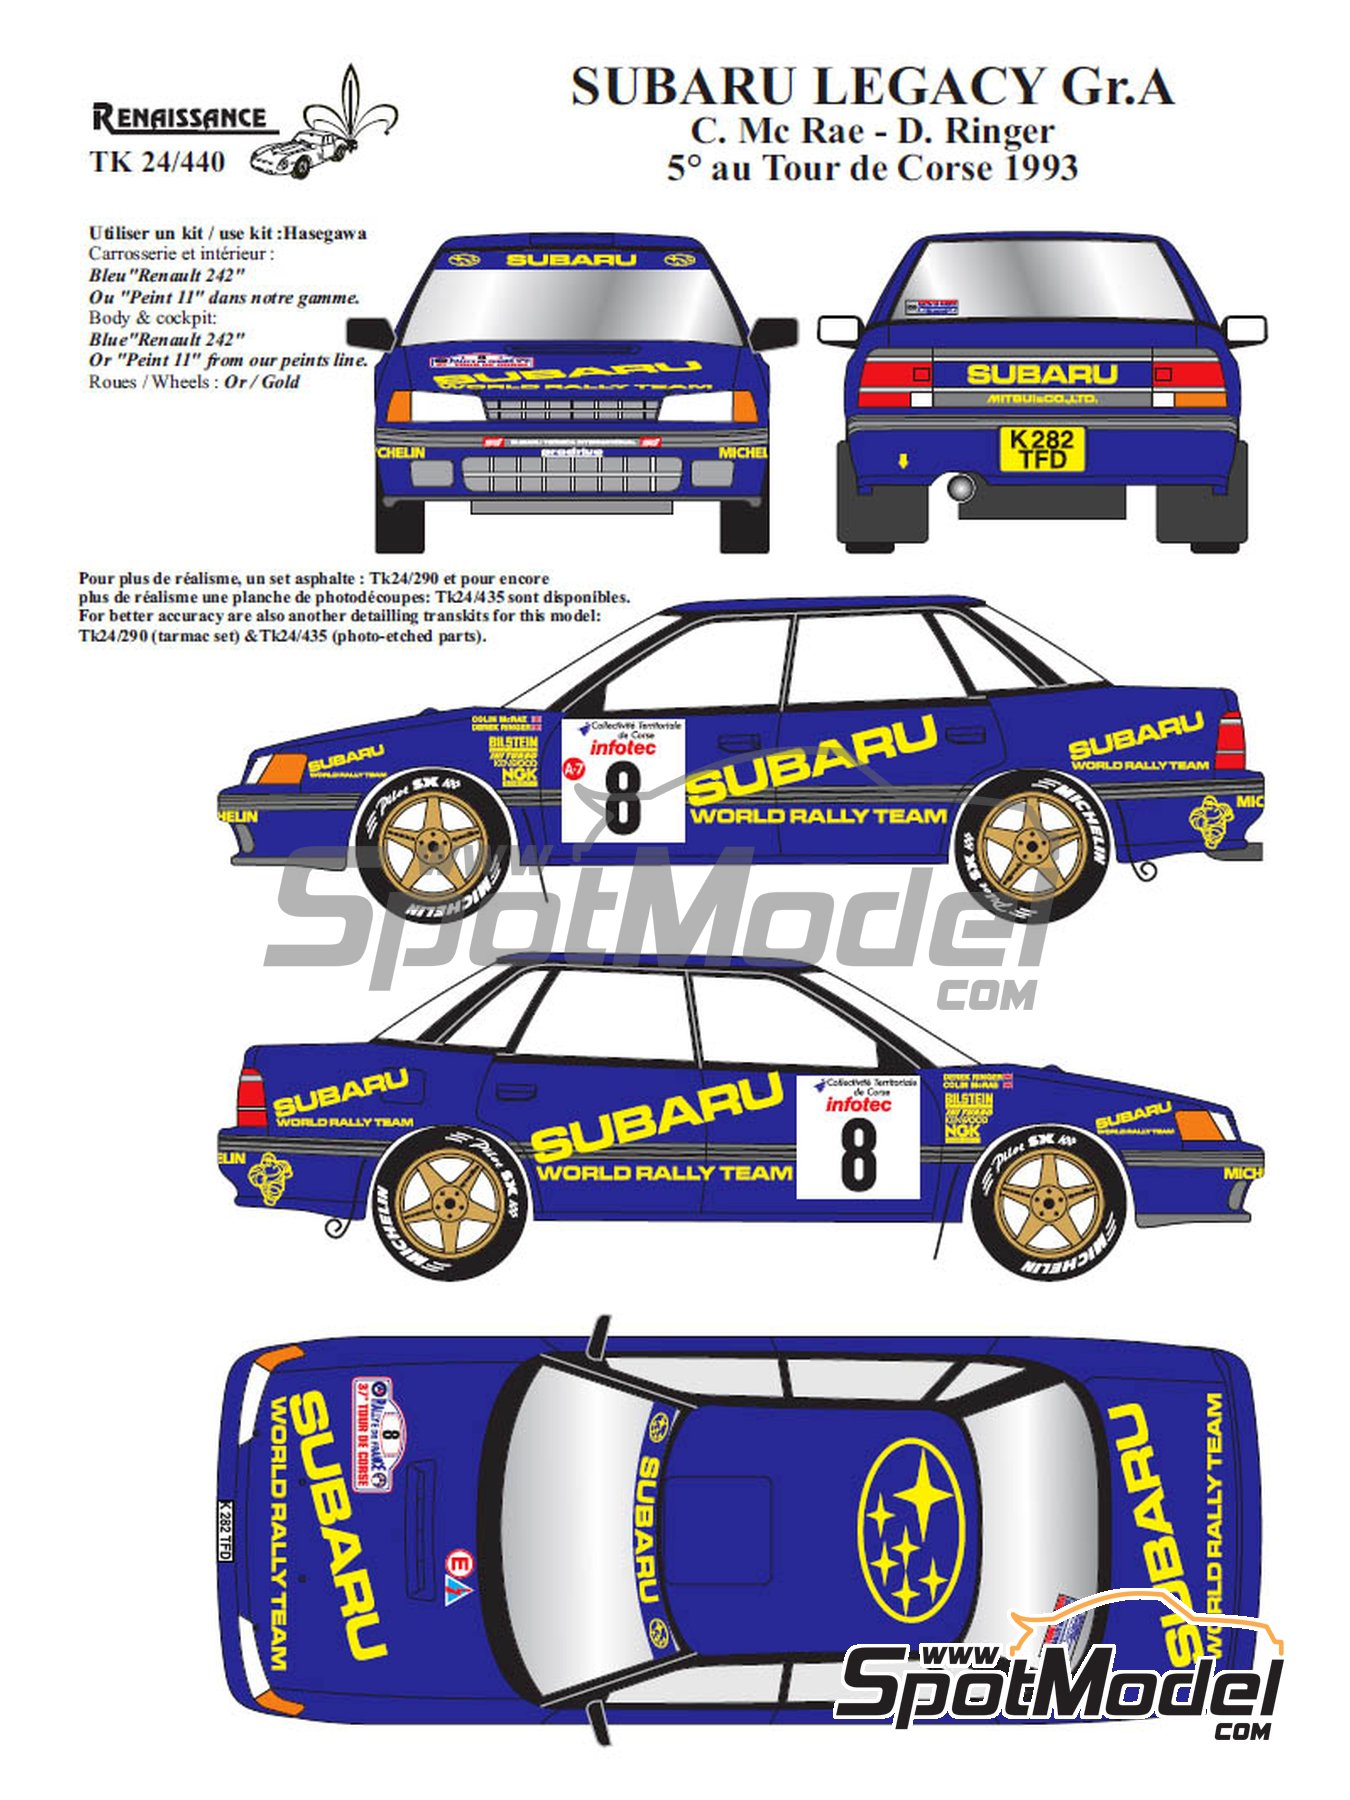 Subaru Legacy Group A - Tour de Corse 1993 | Marking / livery in 1/24 scale manufactured by Renaissance Models (ref. TK24-440) image